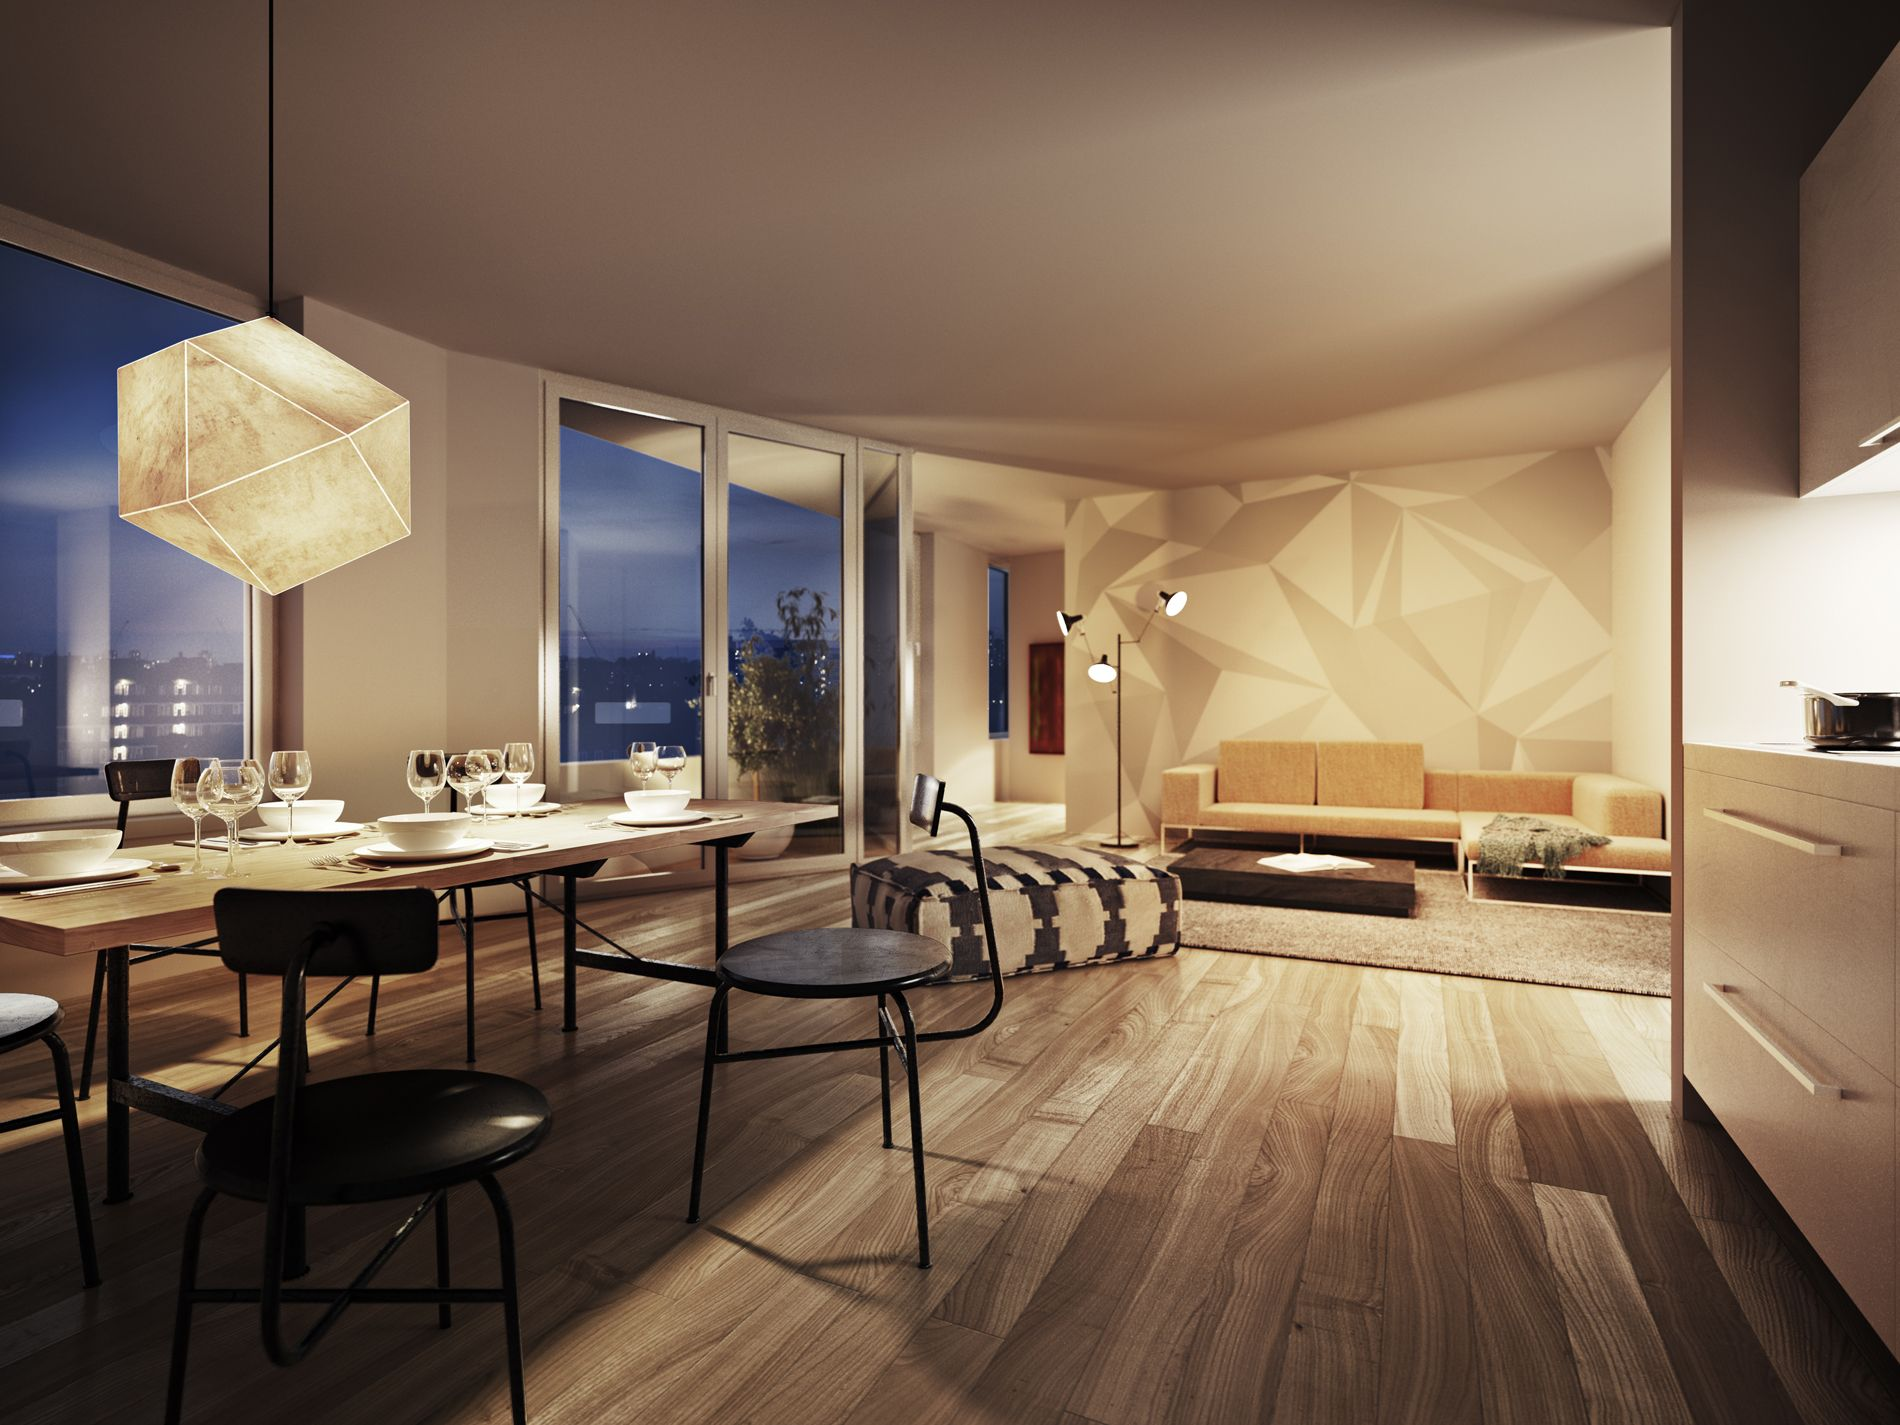 dusk interior renderings - Google Search | wtr | Pinterest